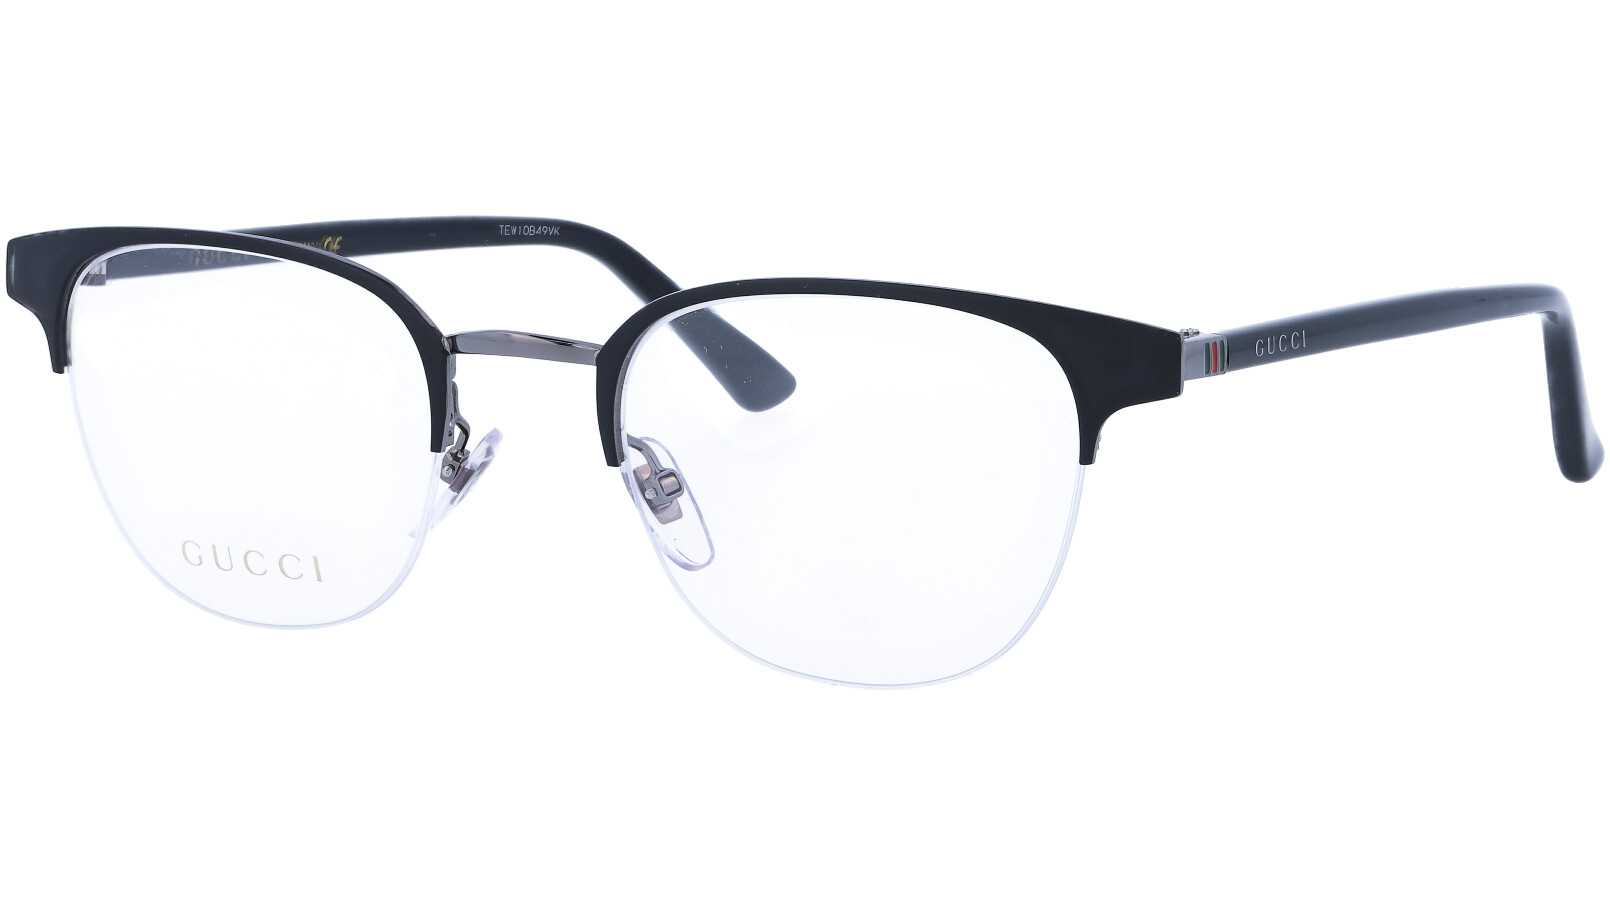 GUCCI GG0020O 001 49 BLACK Glasses